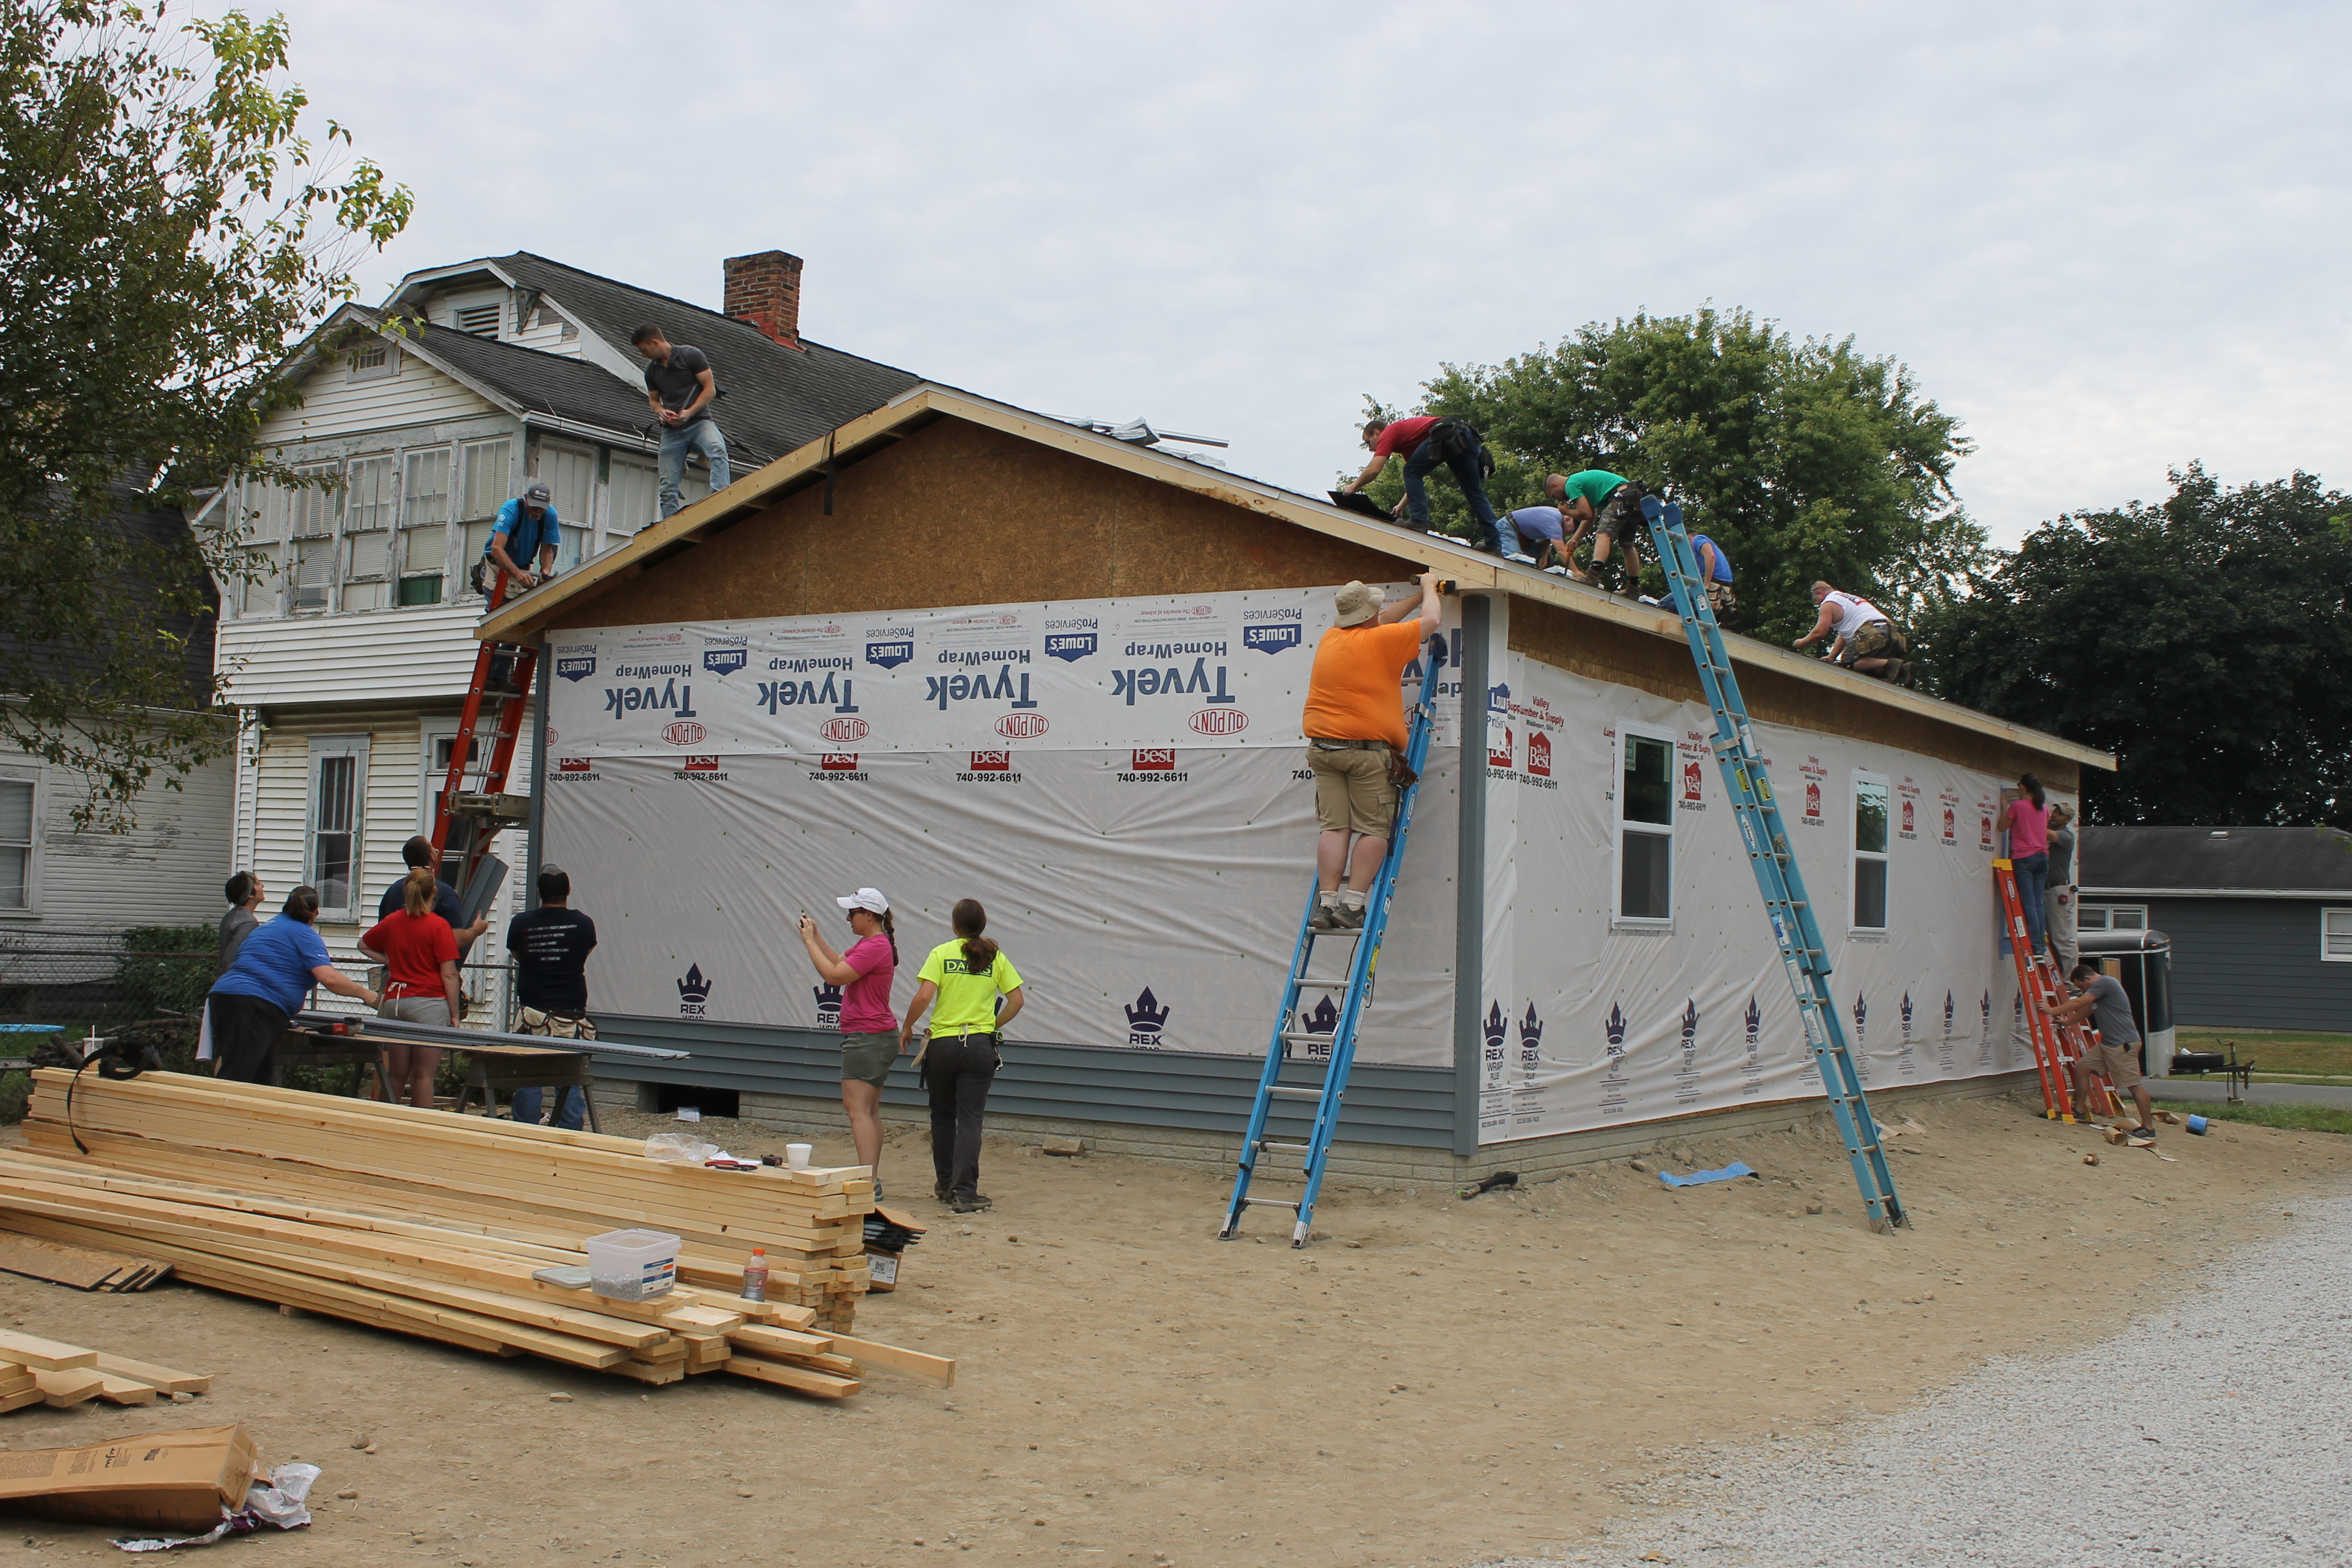 Siding being put up on Blitz build